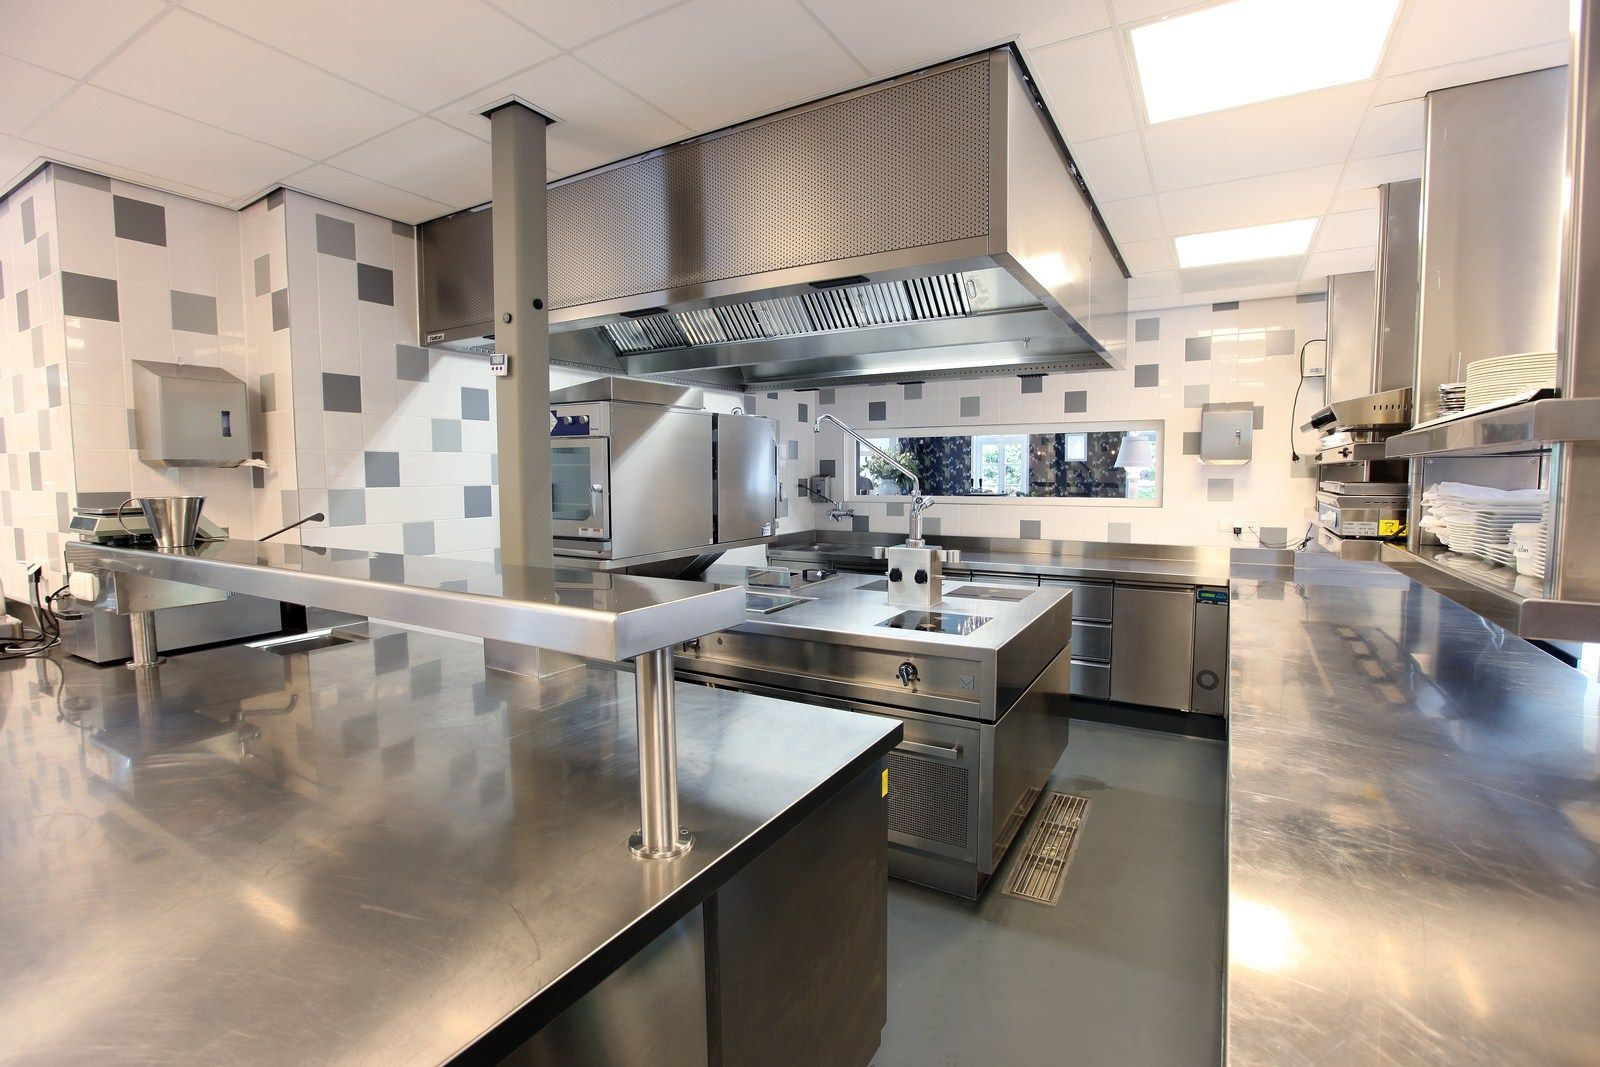 Best commercial kitchen flooring options